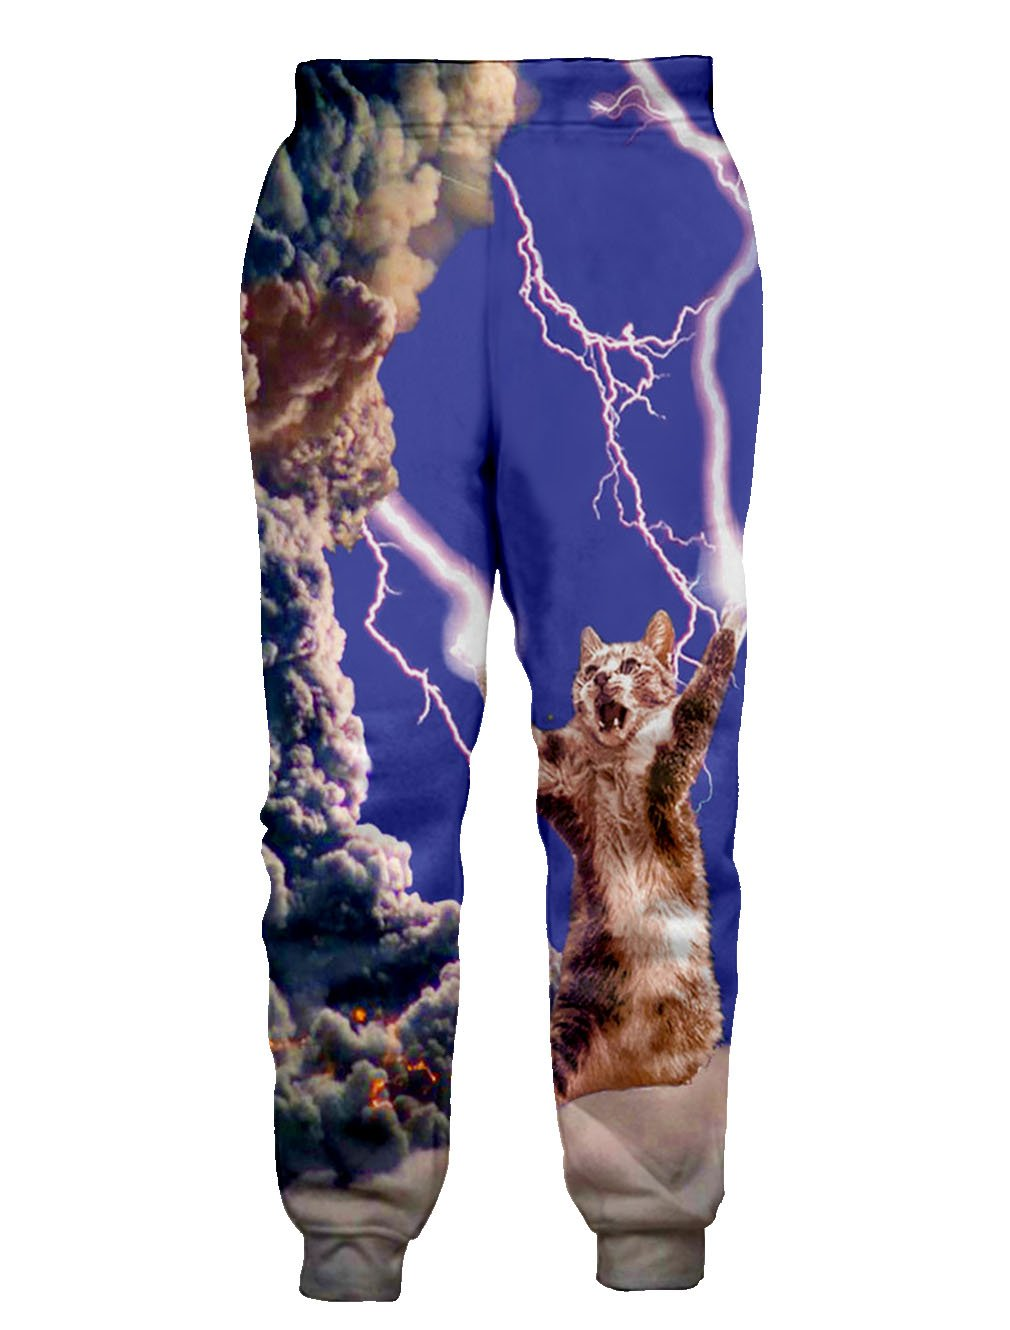 Leapparel Unisex Humor Lightning Cat Pants Elastic Drawstring Hip Hop Rock Sweatpants Trousers XL,Lightning Cat